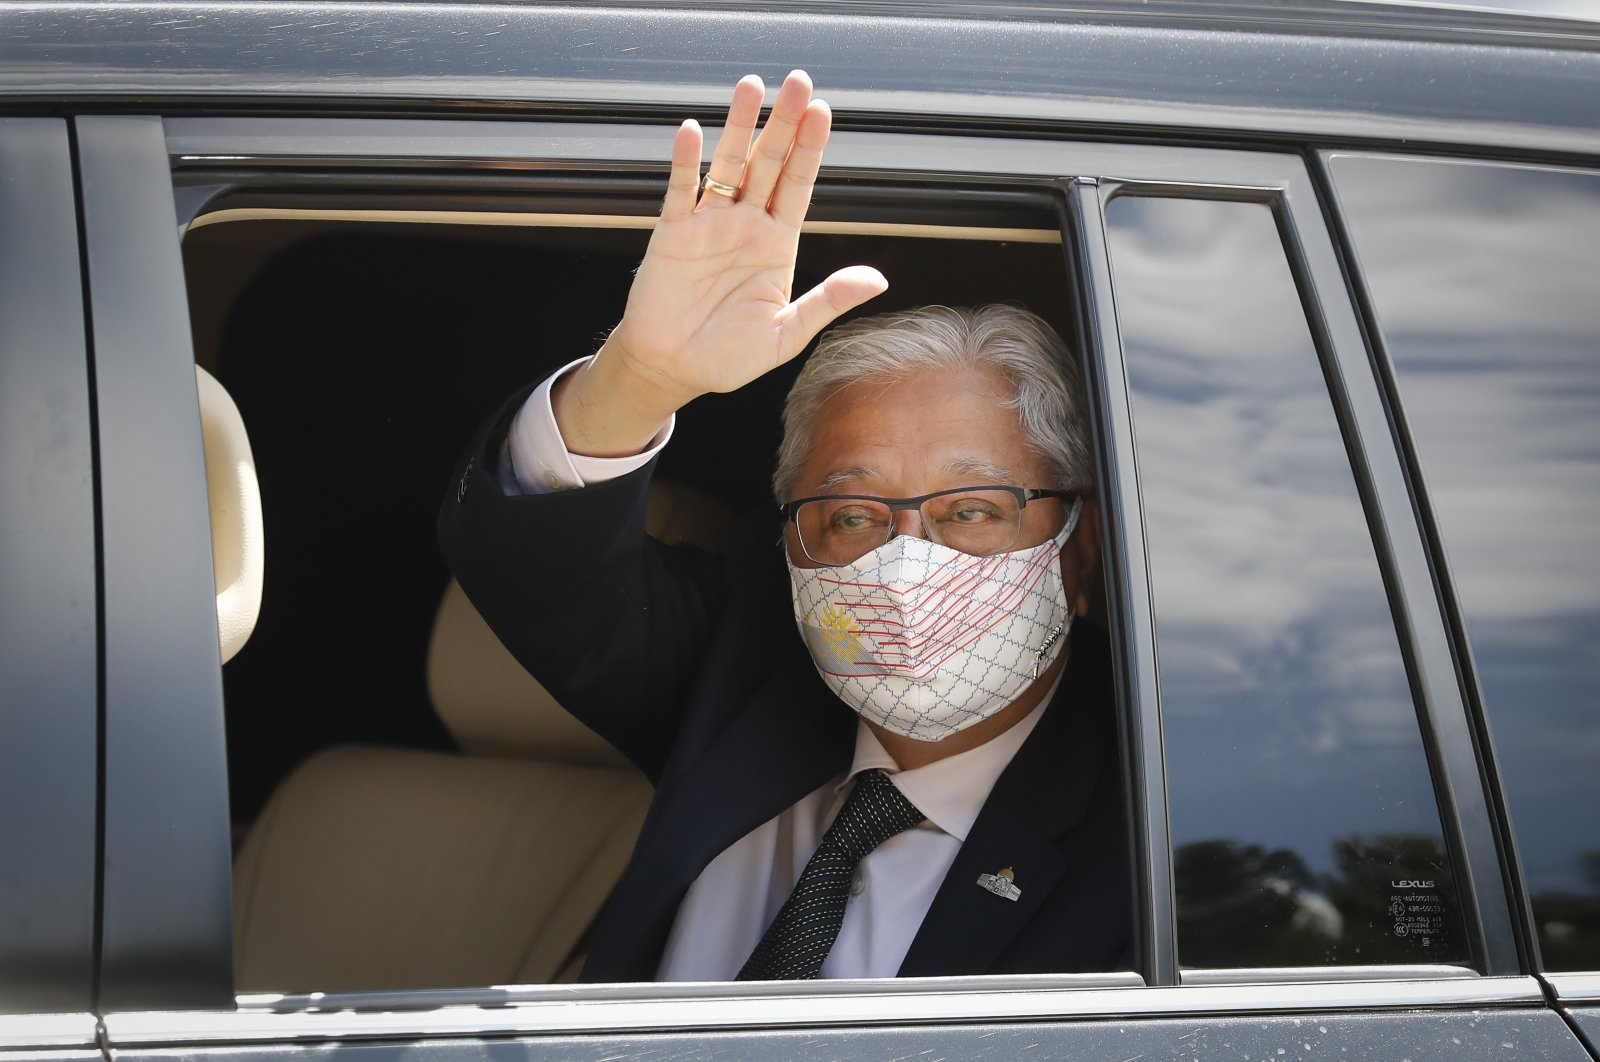 Former Deputy Prime Minister Ismail Sabri Yaakob waves to media as he leaves after a meeting with the king at national palace in Kuala Lumpur, Malaysia, Aug. 19, 2021. (AP Photo)